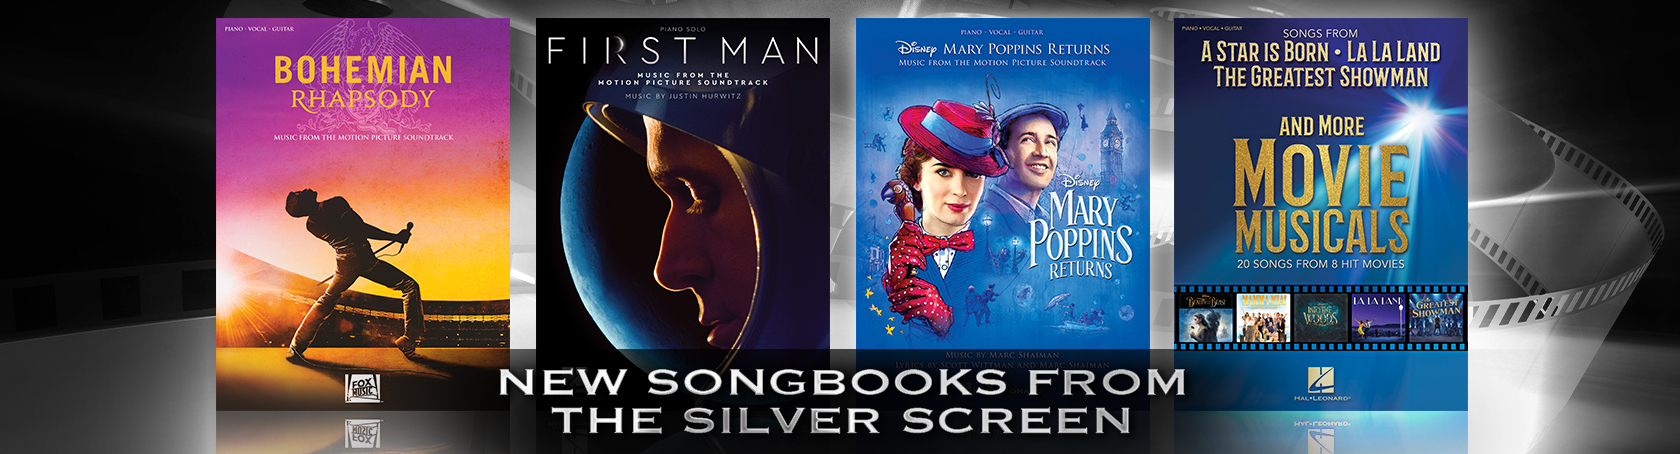 New Songbooks from the Silver Screen